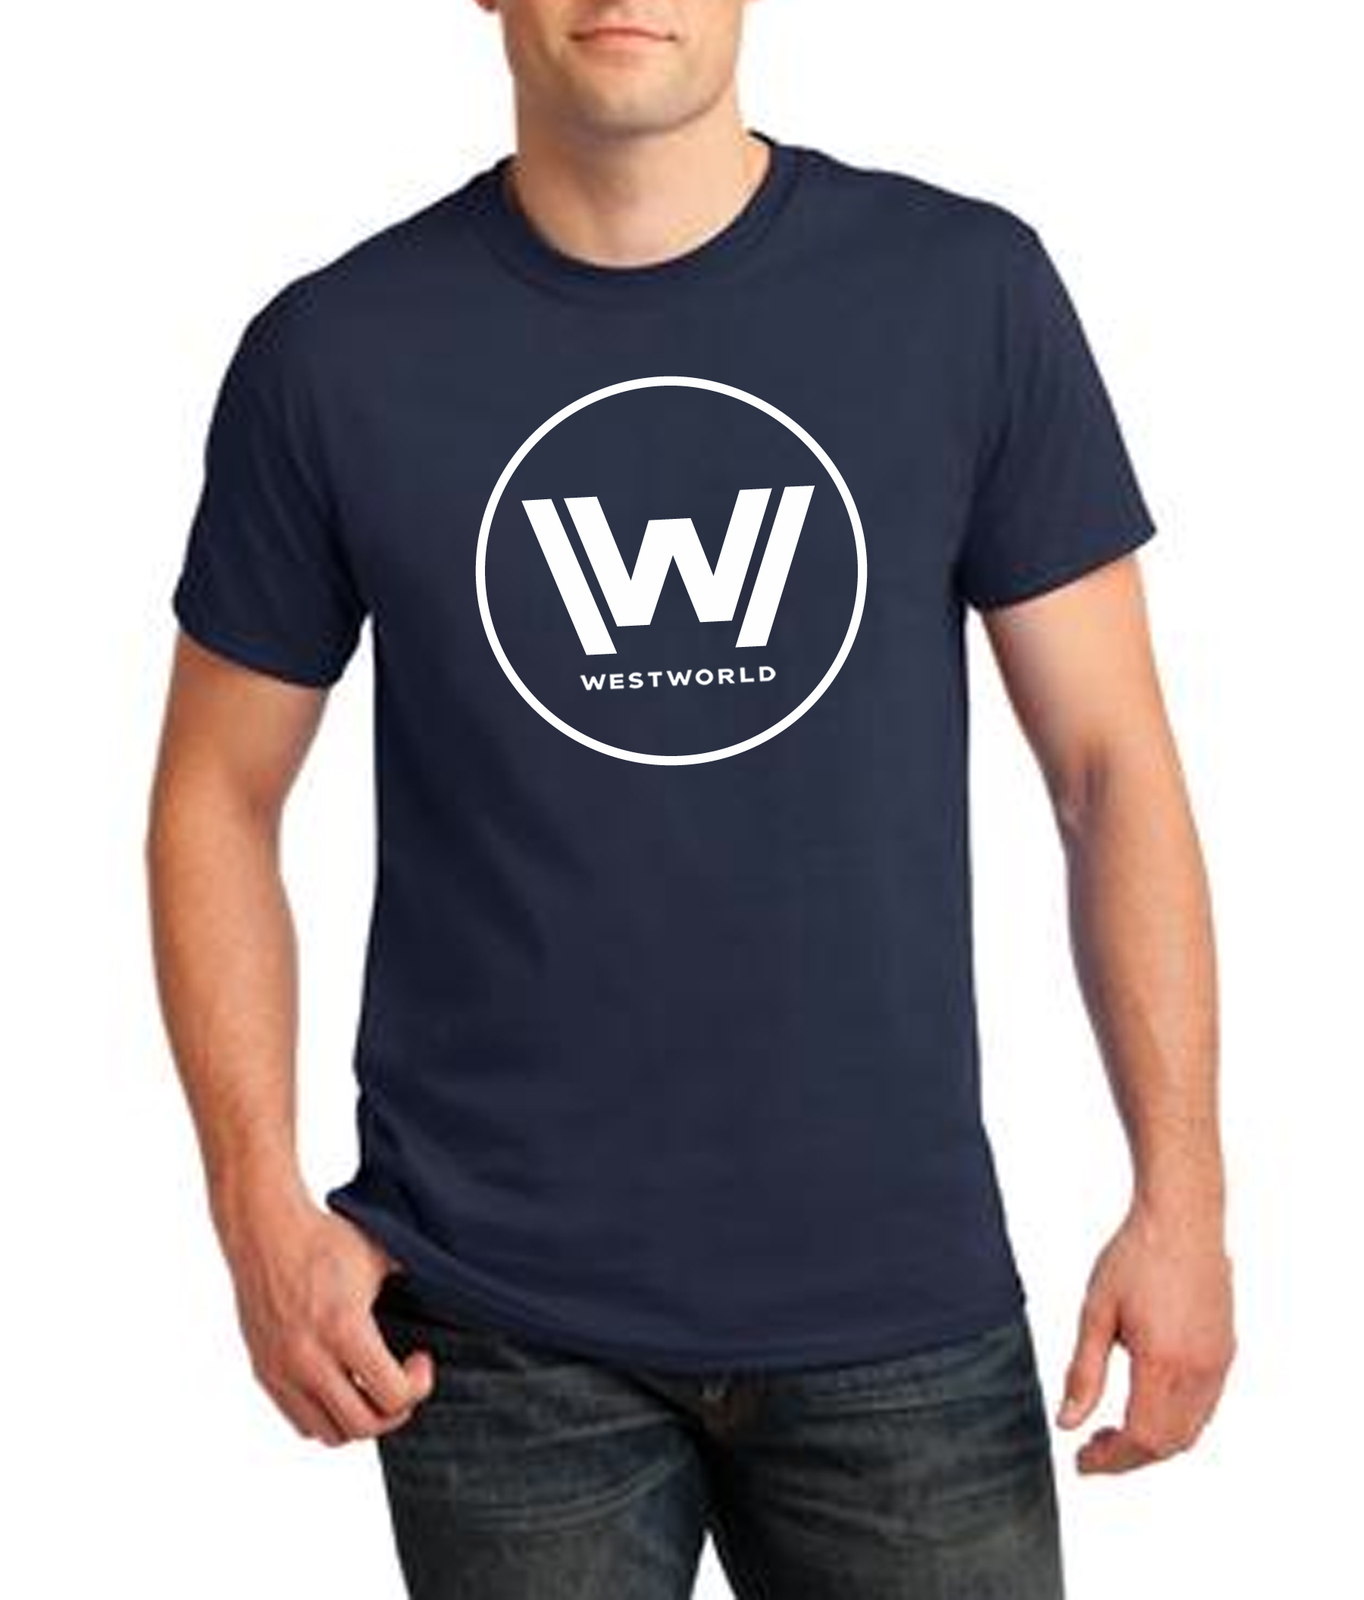 Westworld navy blue t shirt model